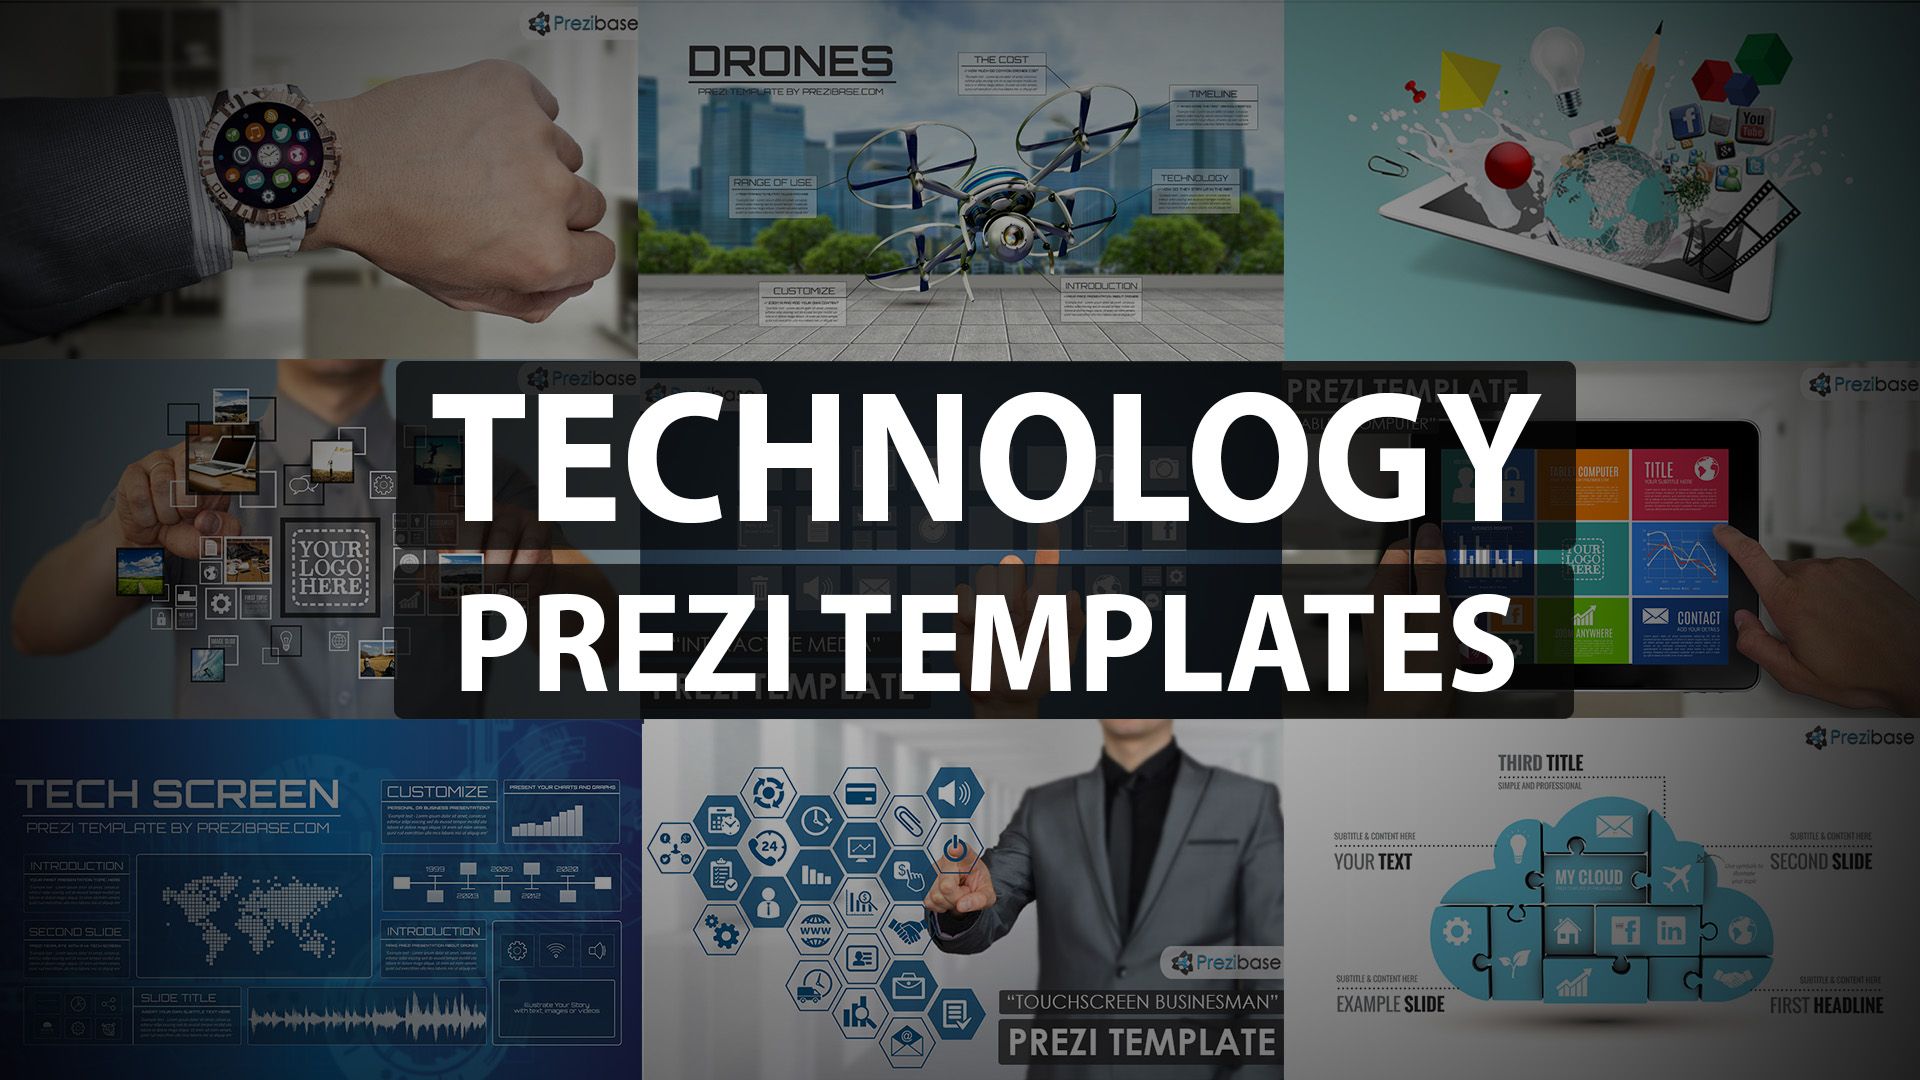 Technology, IT and internet prezi templates for presentations